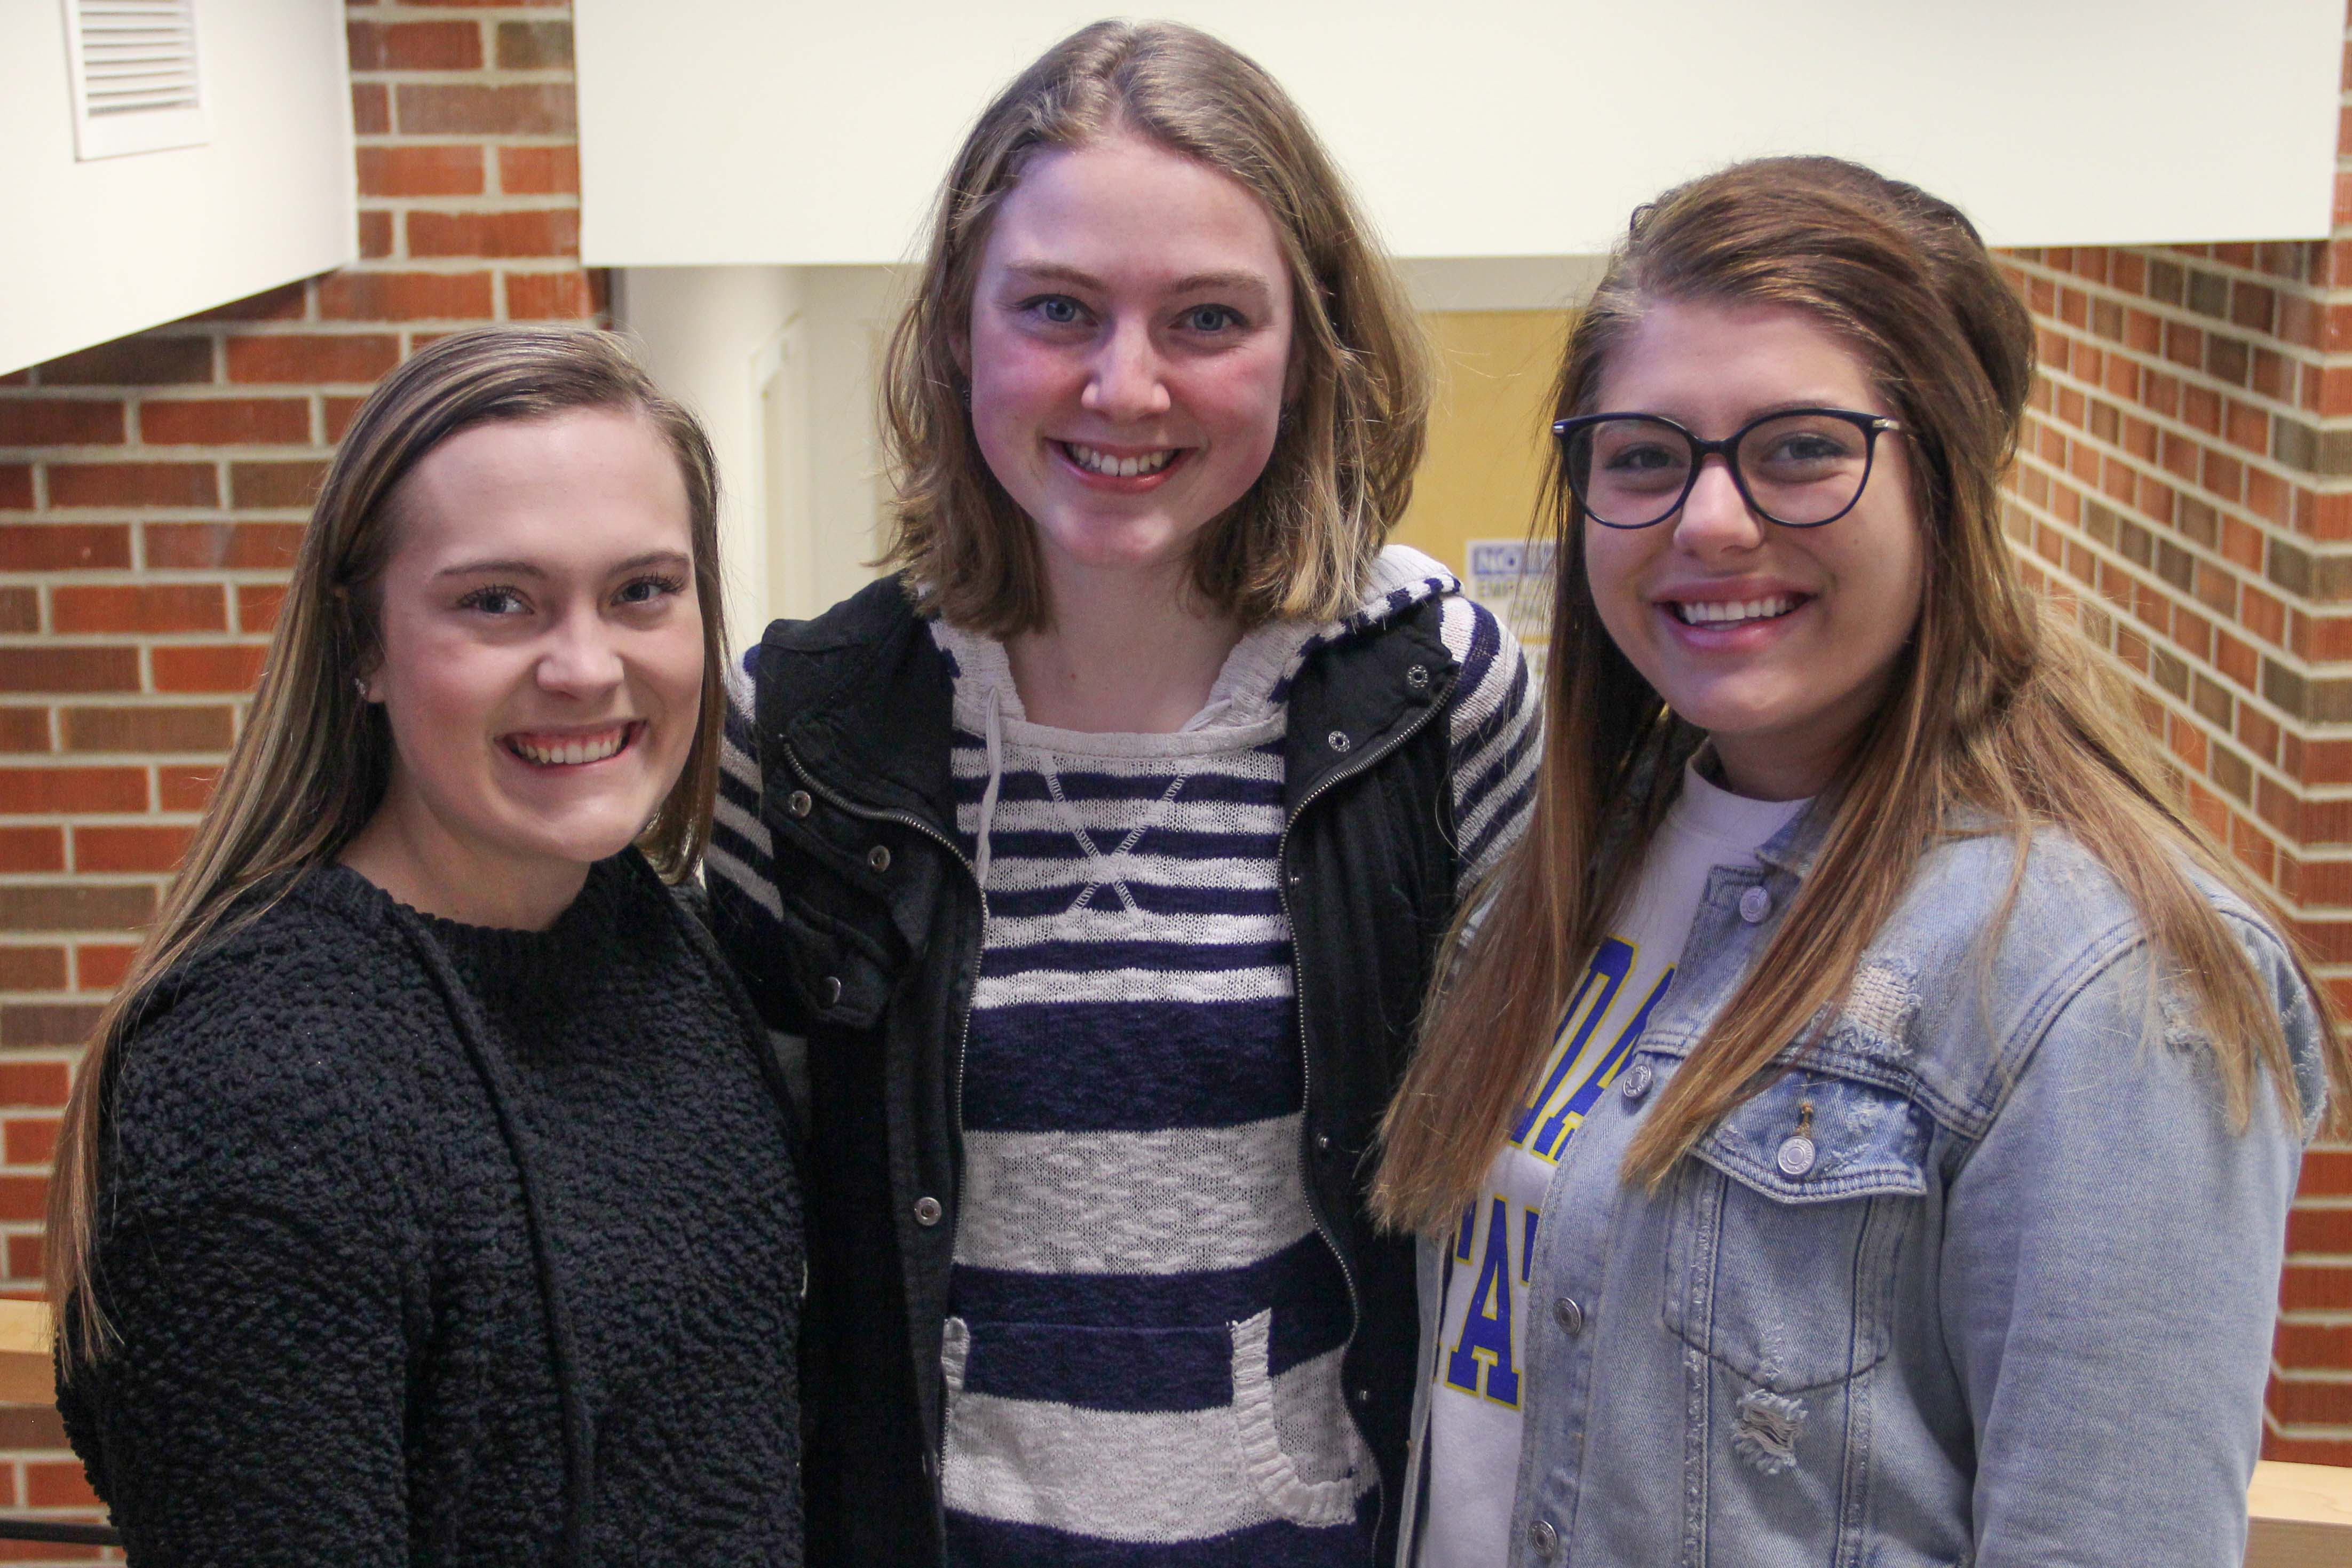 Three students who were recipients of national dairy scholarships